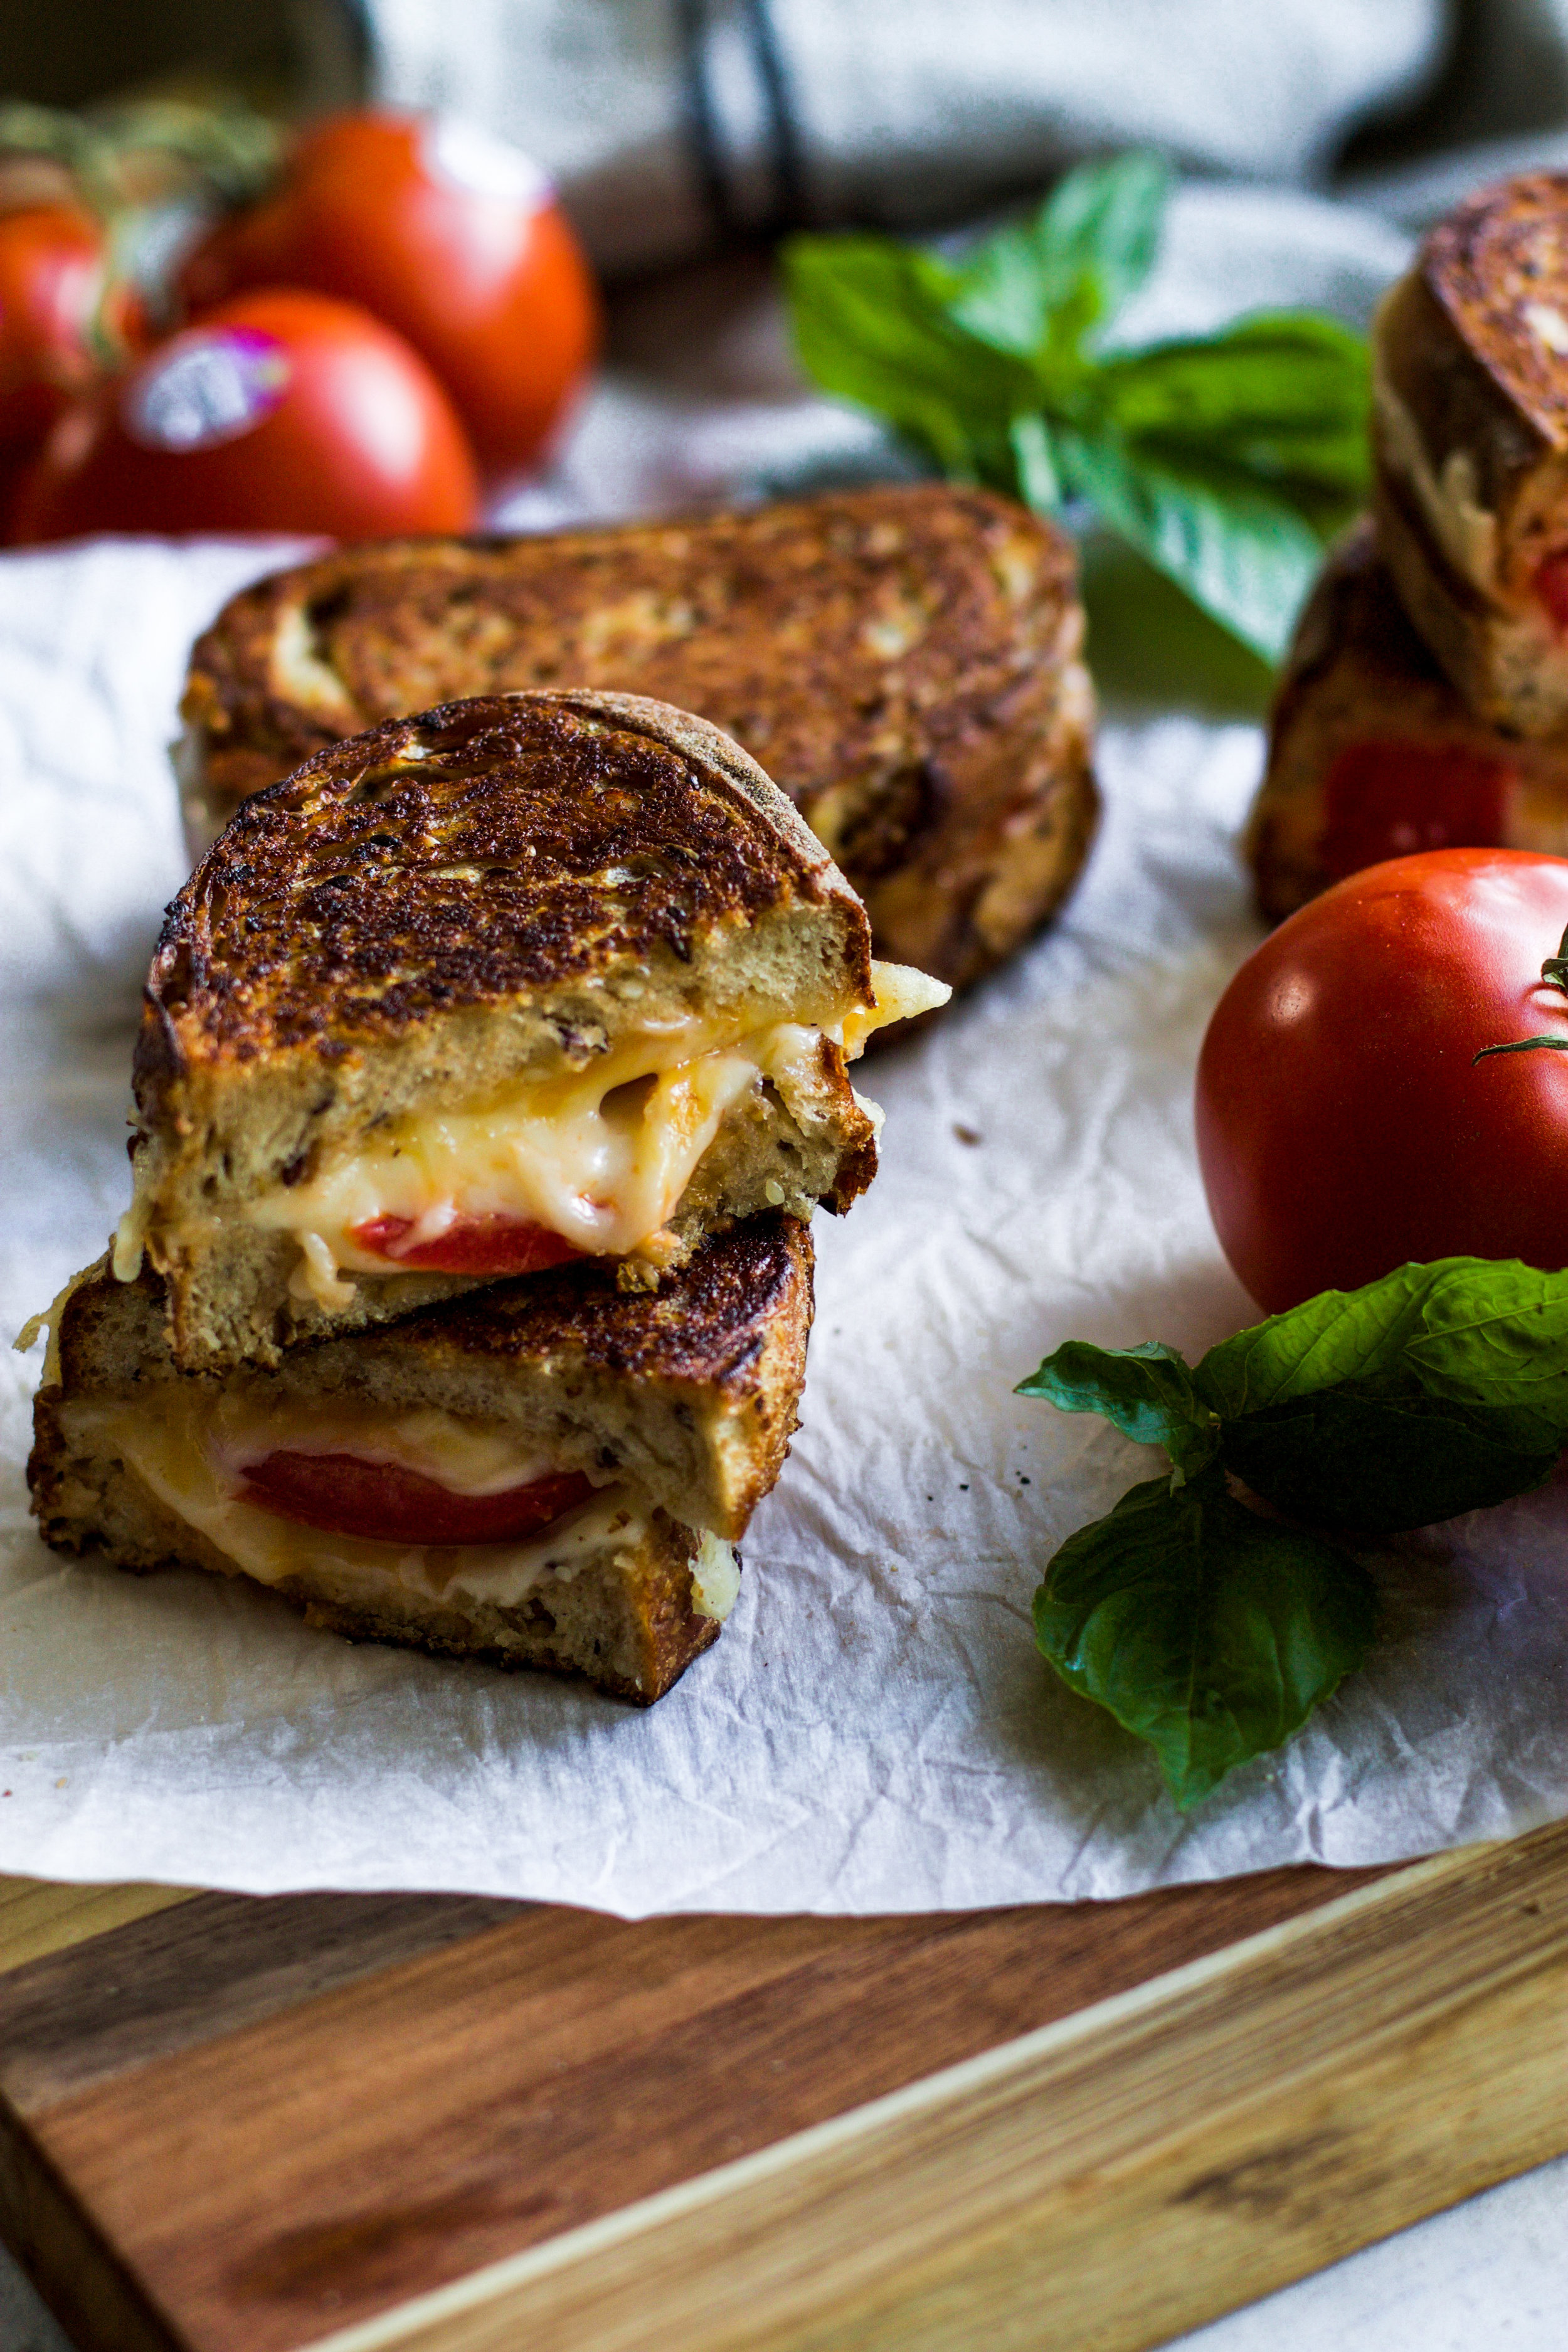 Grilled Tomato and Cheese Sandwich: My Diary of Us